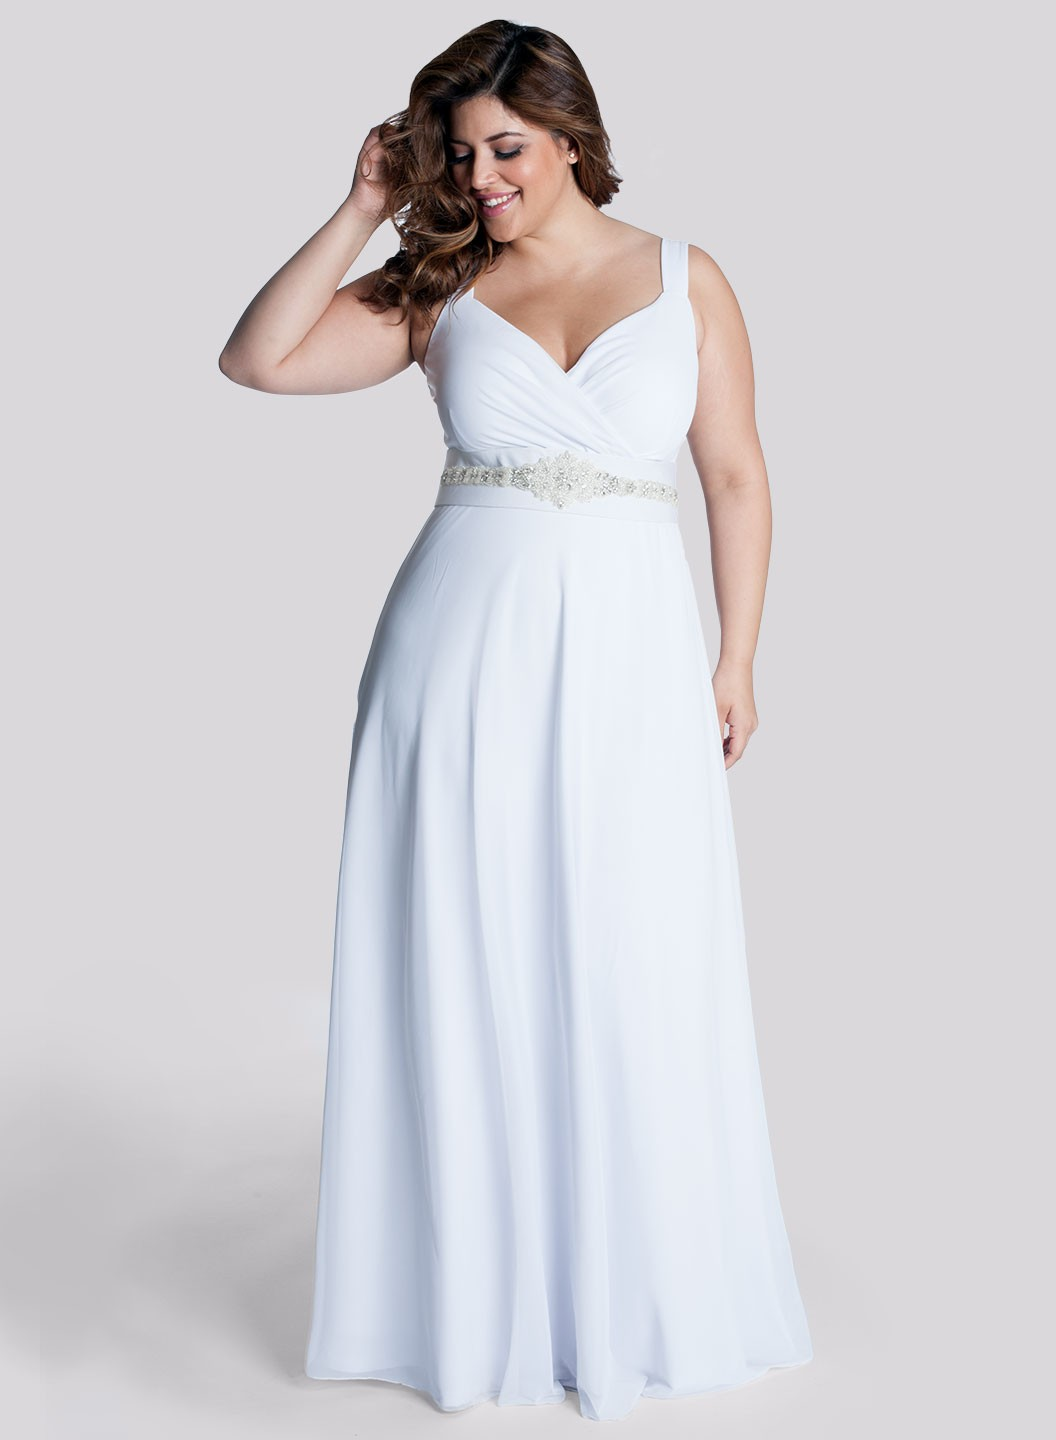 Plus size wedding dresses dressed up girl for Wedding dresses for girl